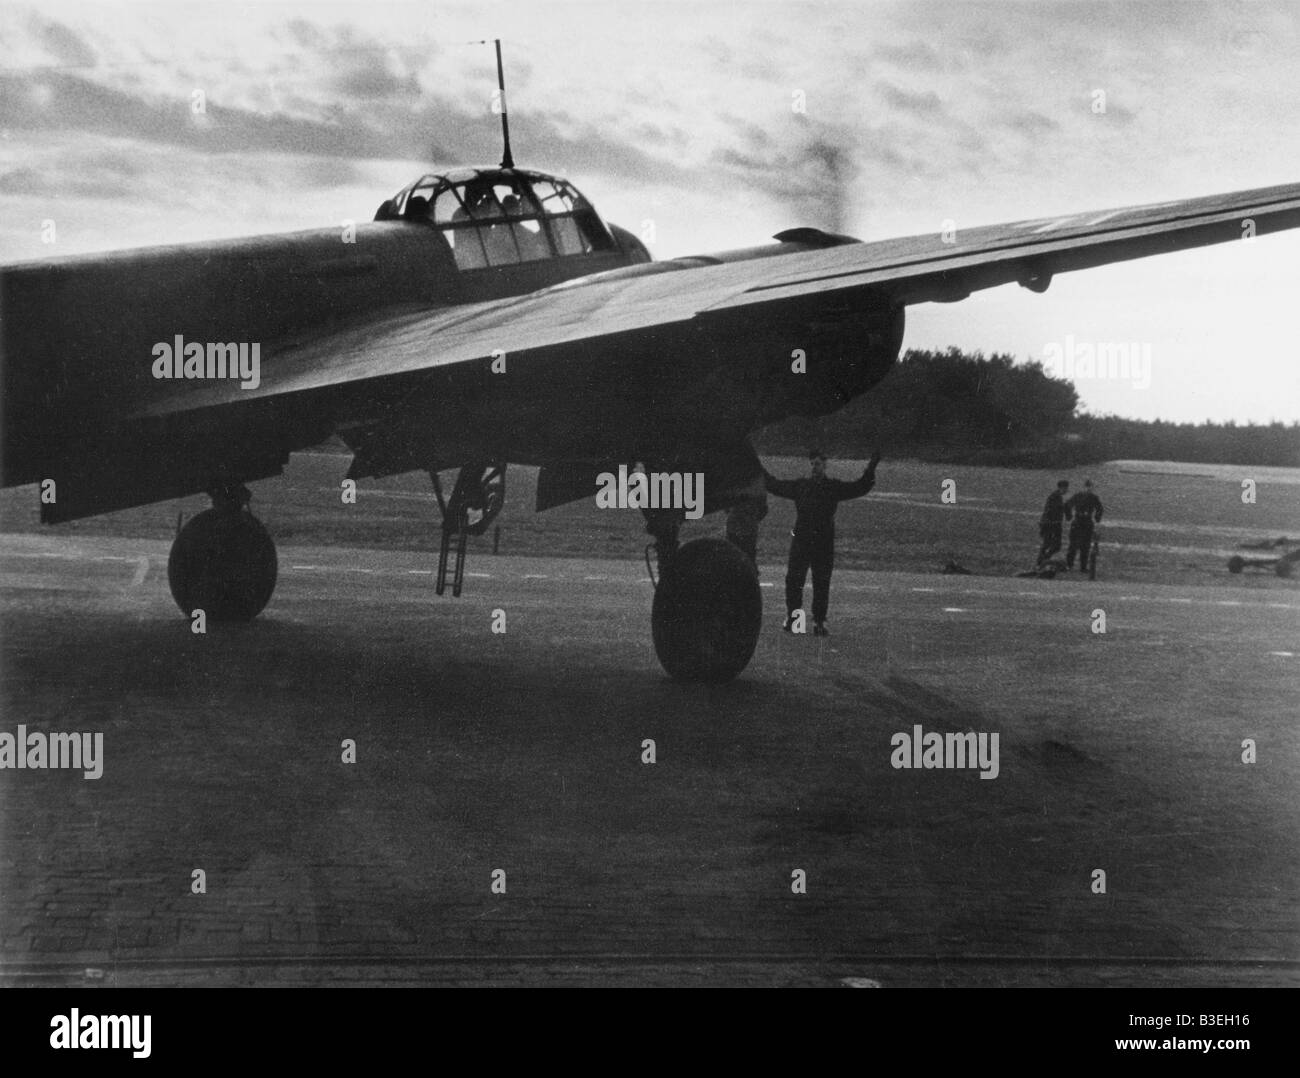 WW2, Aerial Warfare against England - Stock Image